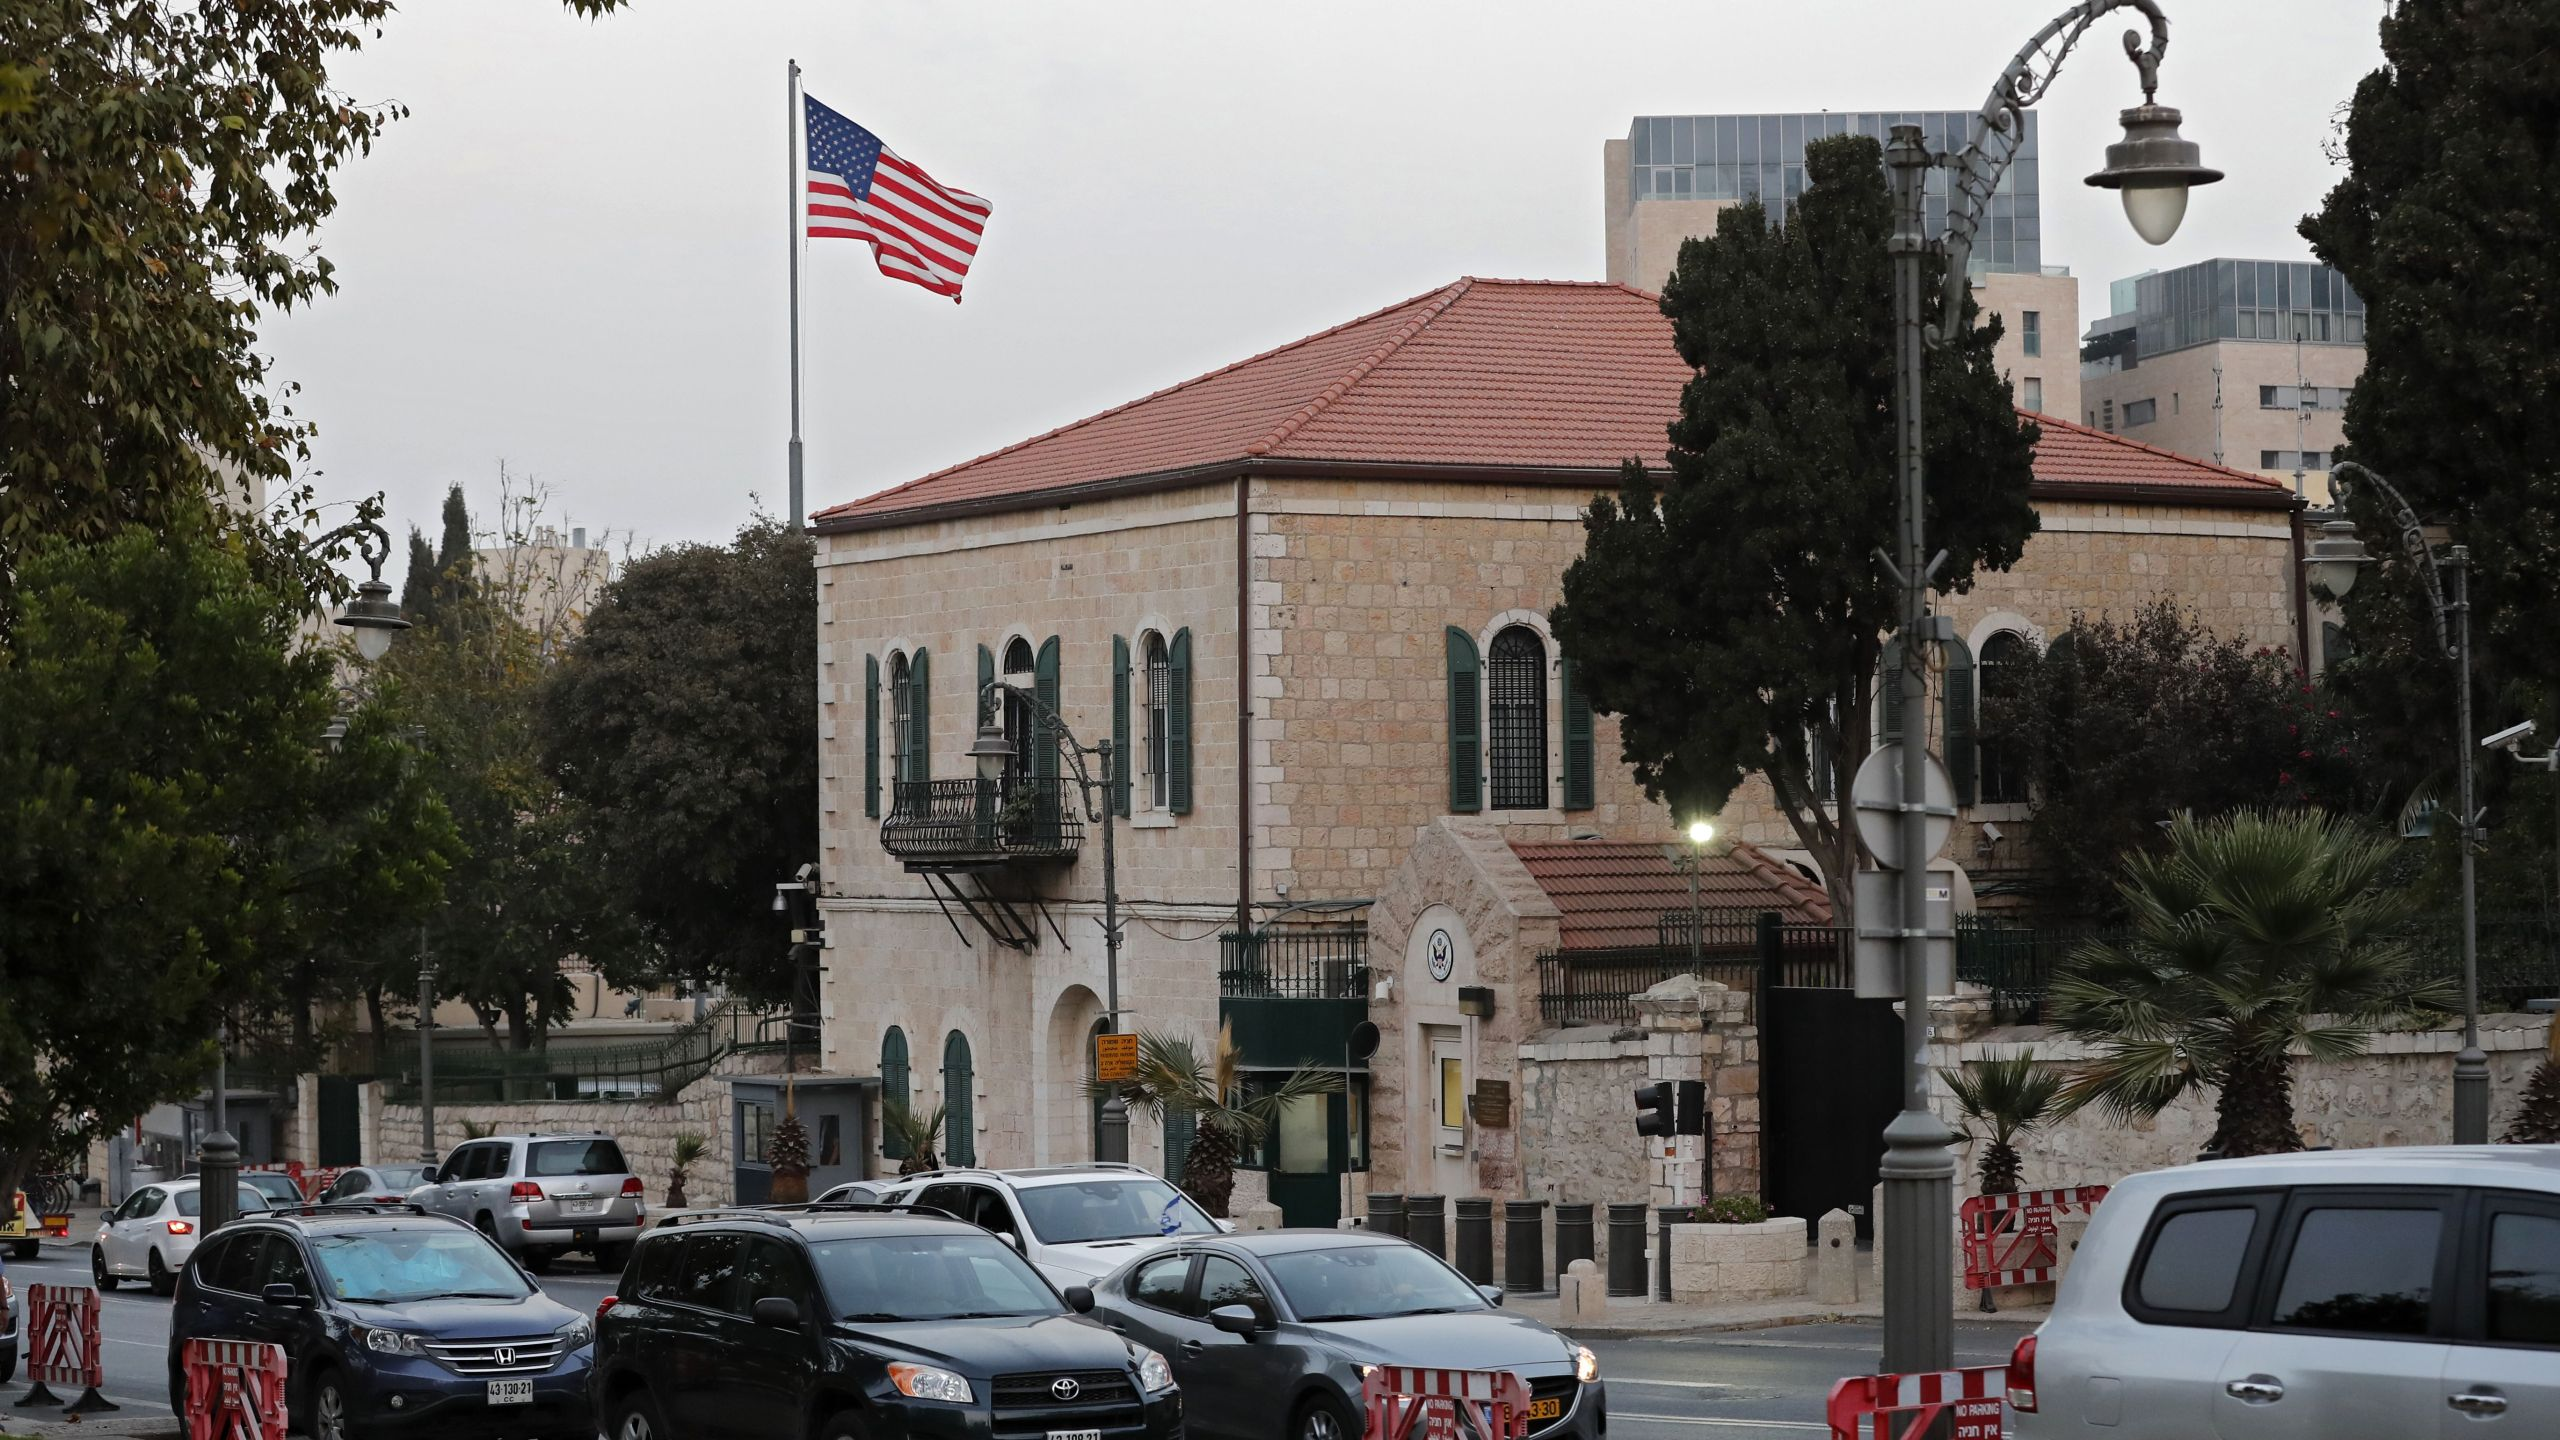 A picture taken on October 18, 2018 shows the U.S. Consulate in Jerusalem. (Credit: Thomas Coex/AFP/Getty Images)